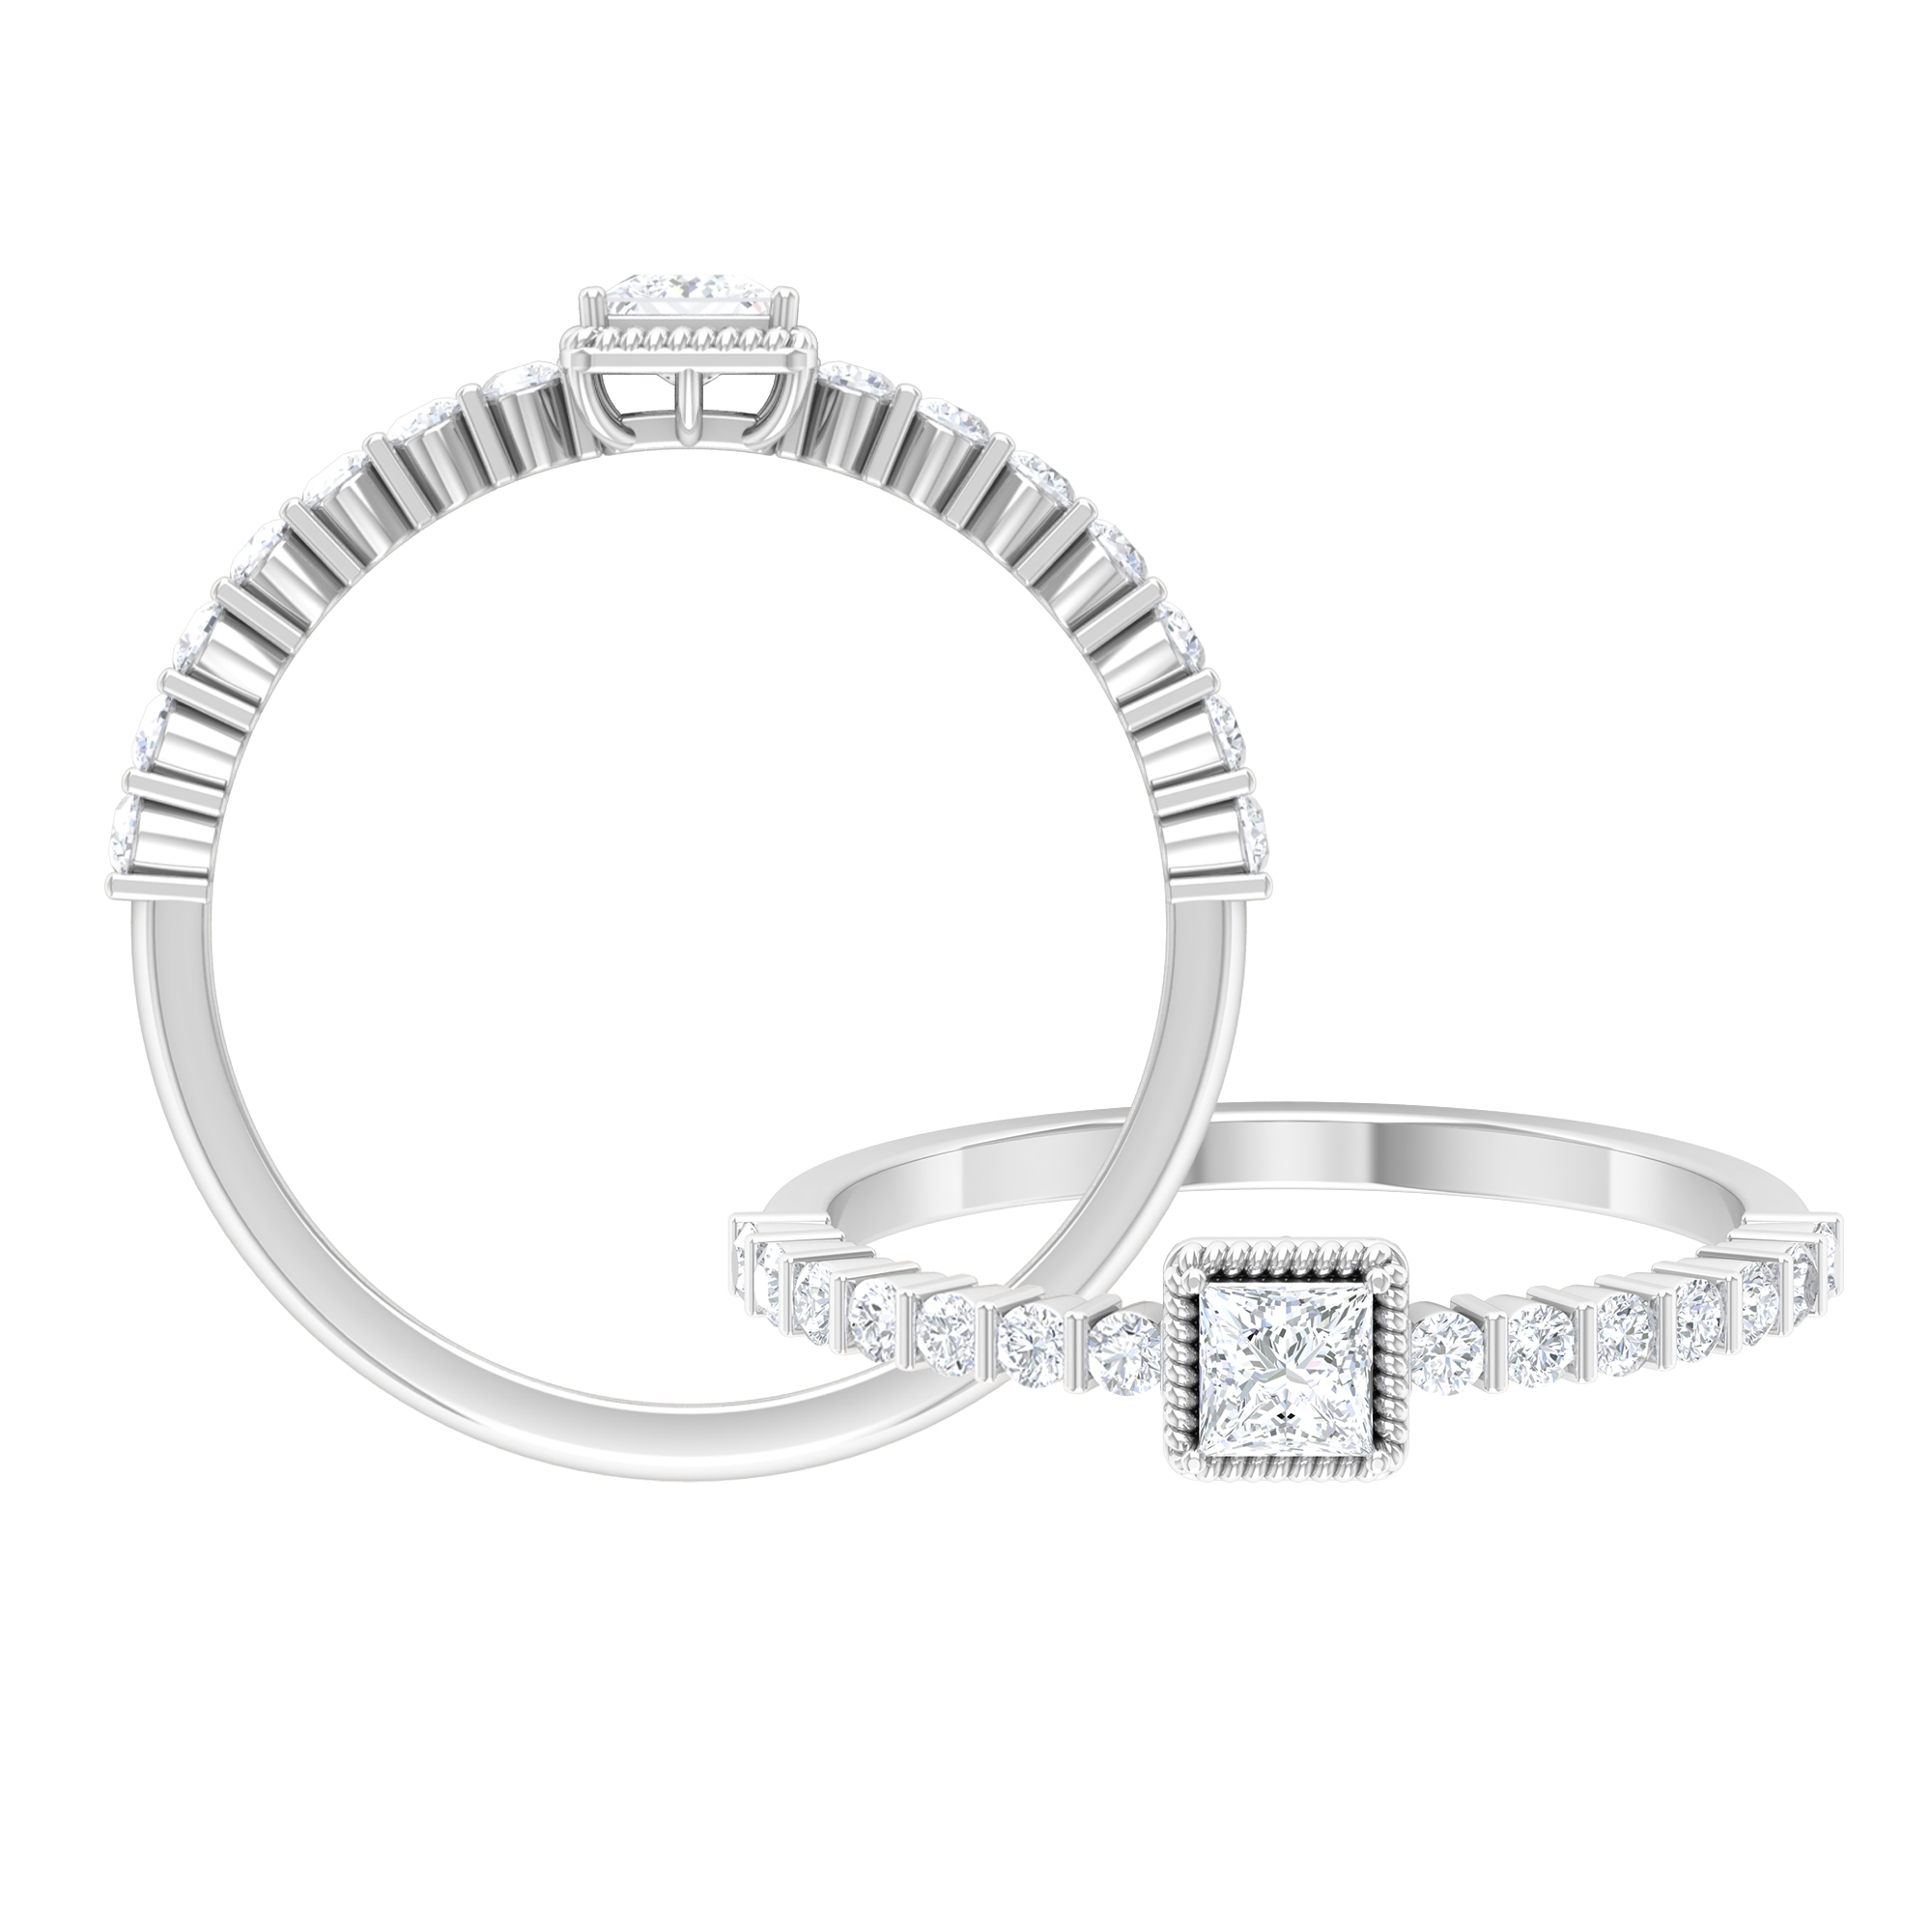 1/2 CT Rope Frame Diamond Solitaire Ring with Bar Set Side Stones